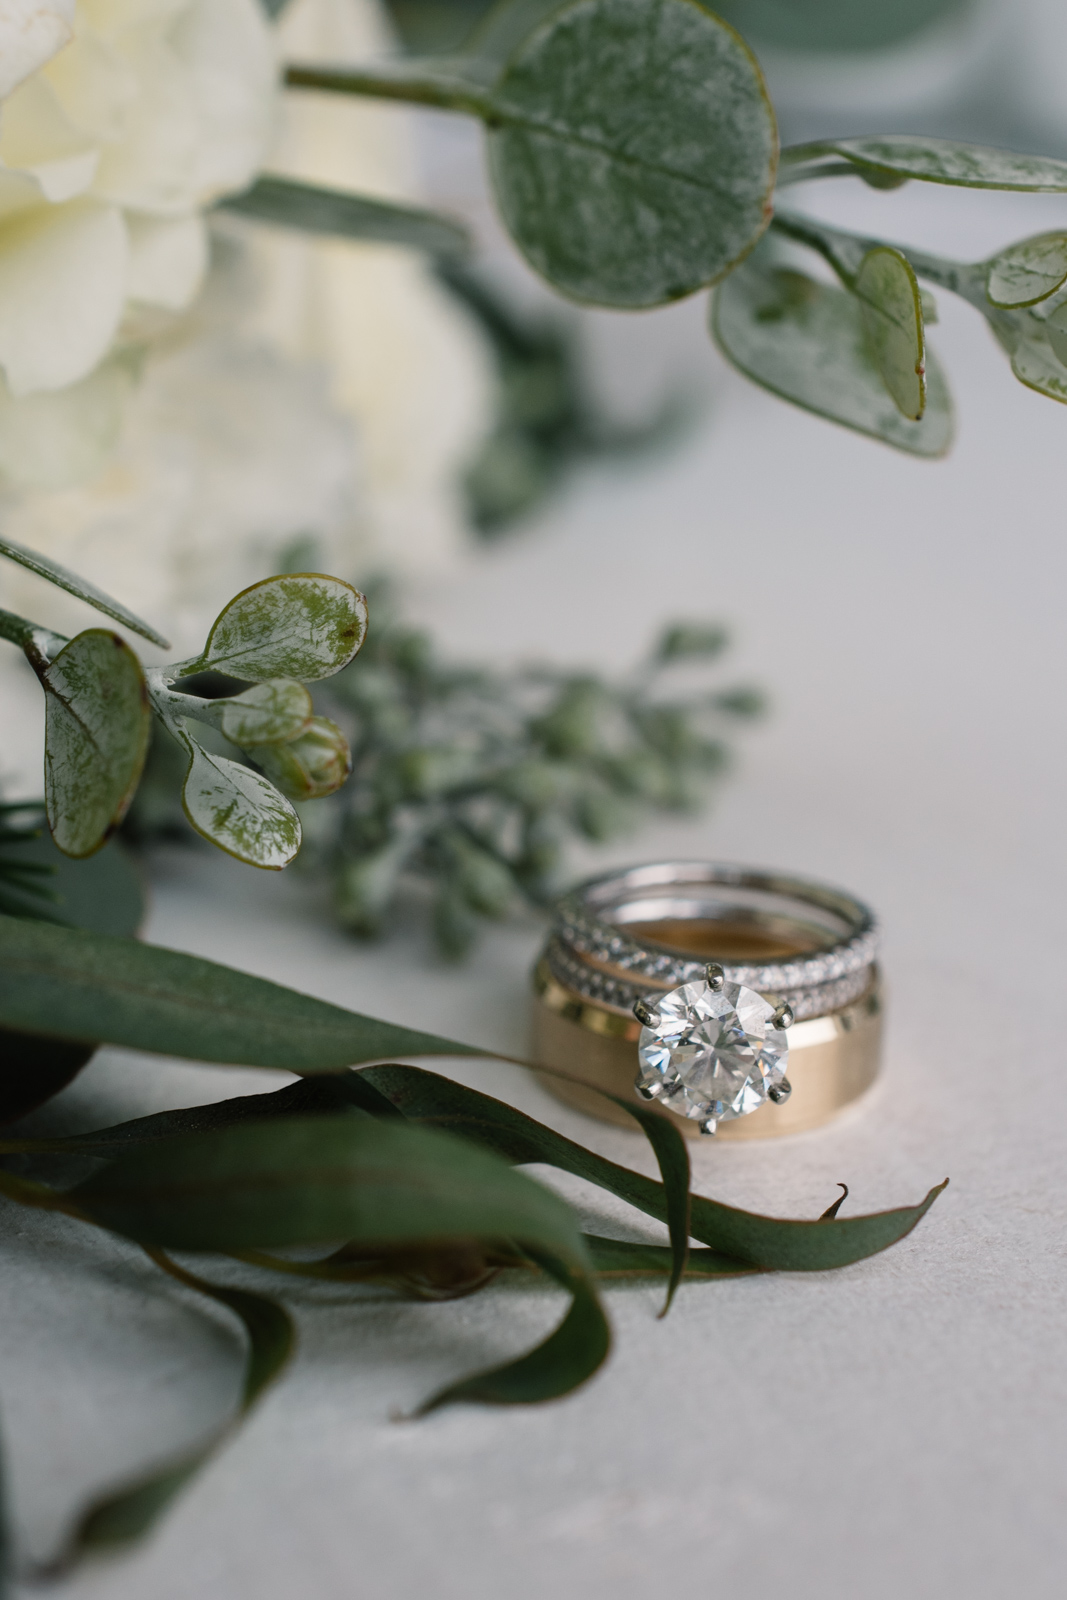 wedding rings in white rose and greenery floral bouquet